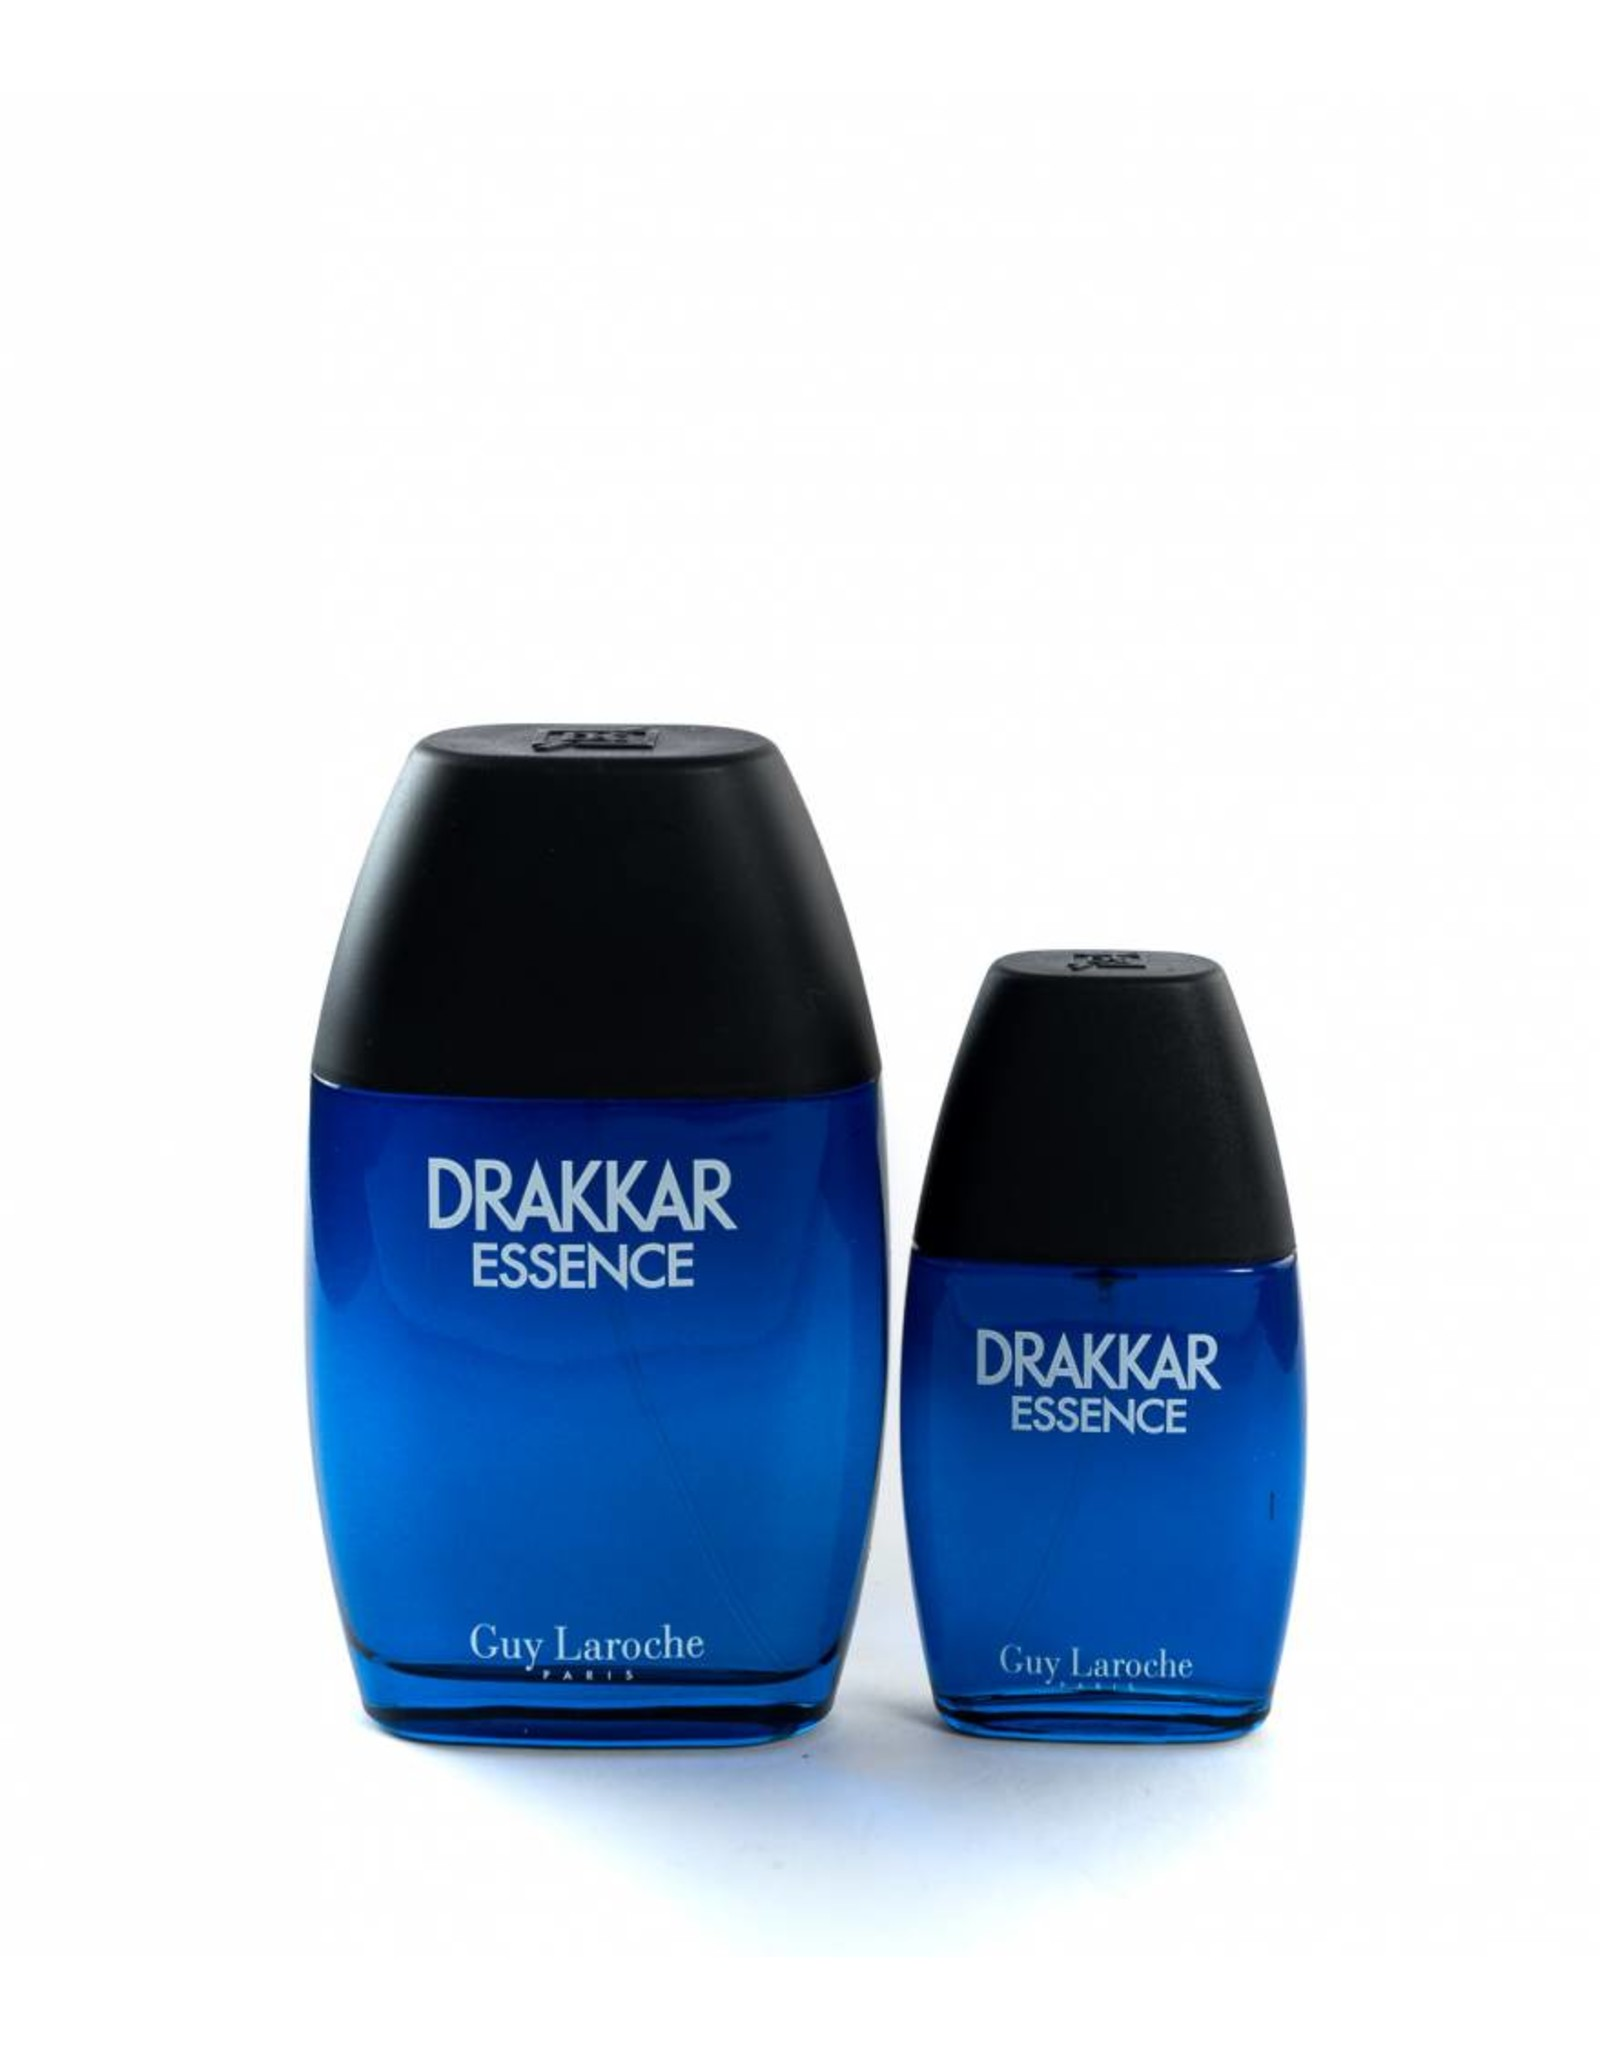 GUY LAROCHE GUY LAROCHE DRAKKAR ESSENCE 2pcs Set